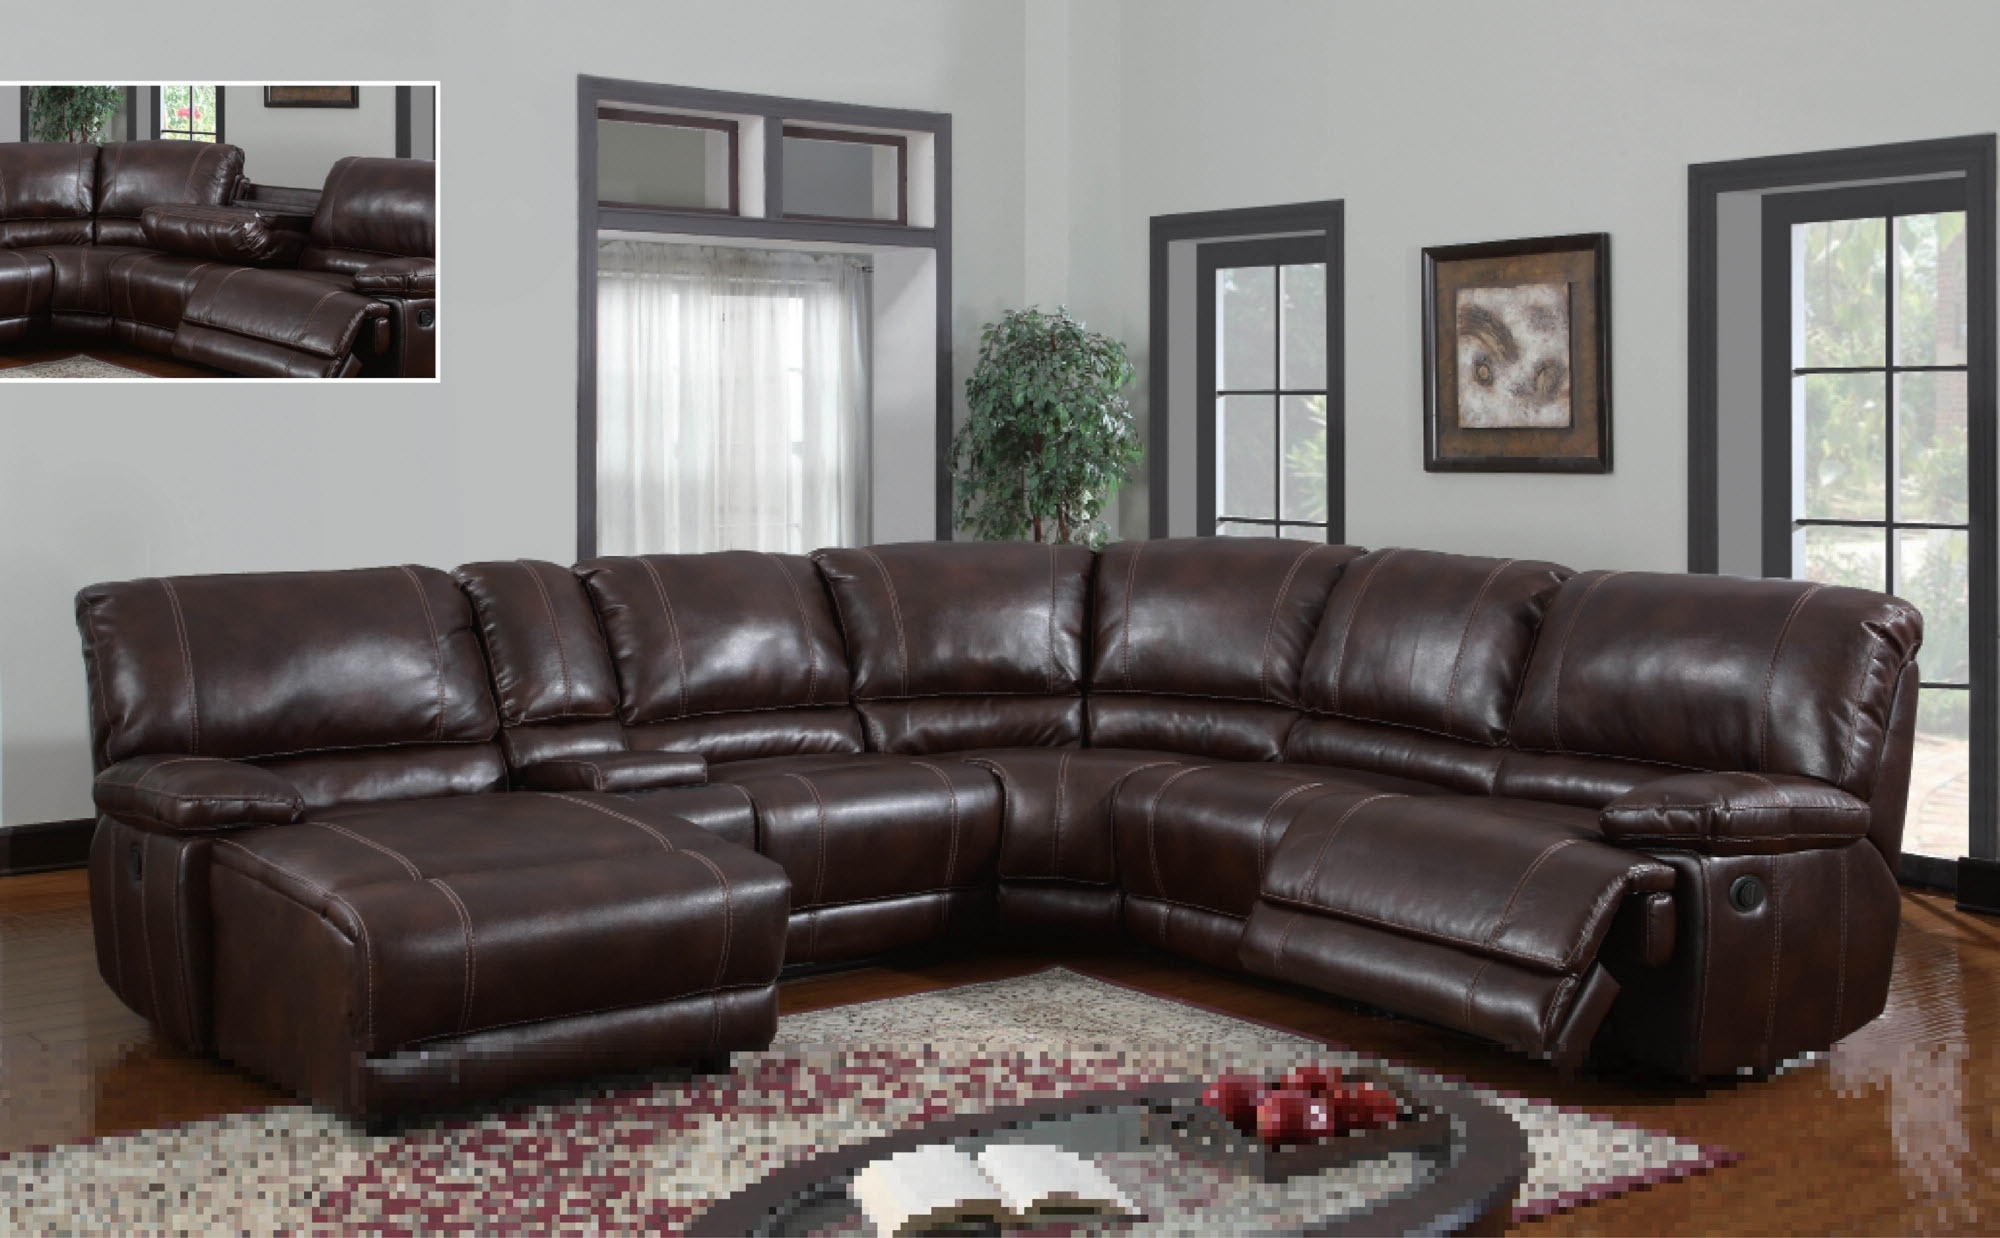 Popular Interesting Leather Sectional Sofa With Power Recliner 93 In Pertaining To Sectional Sofas With Power Recliners (View 11 of 20)